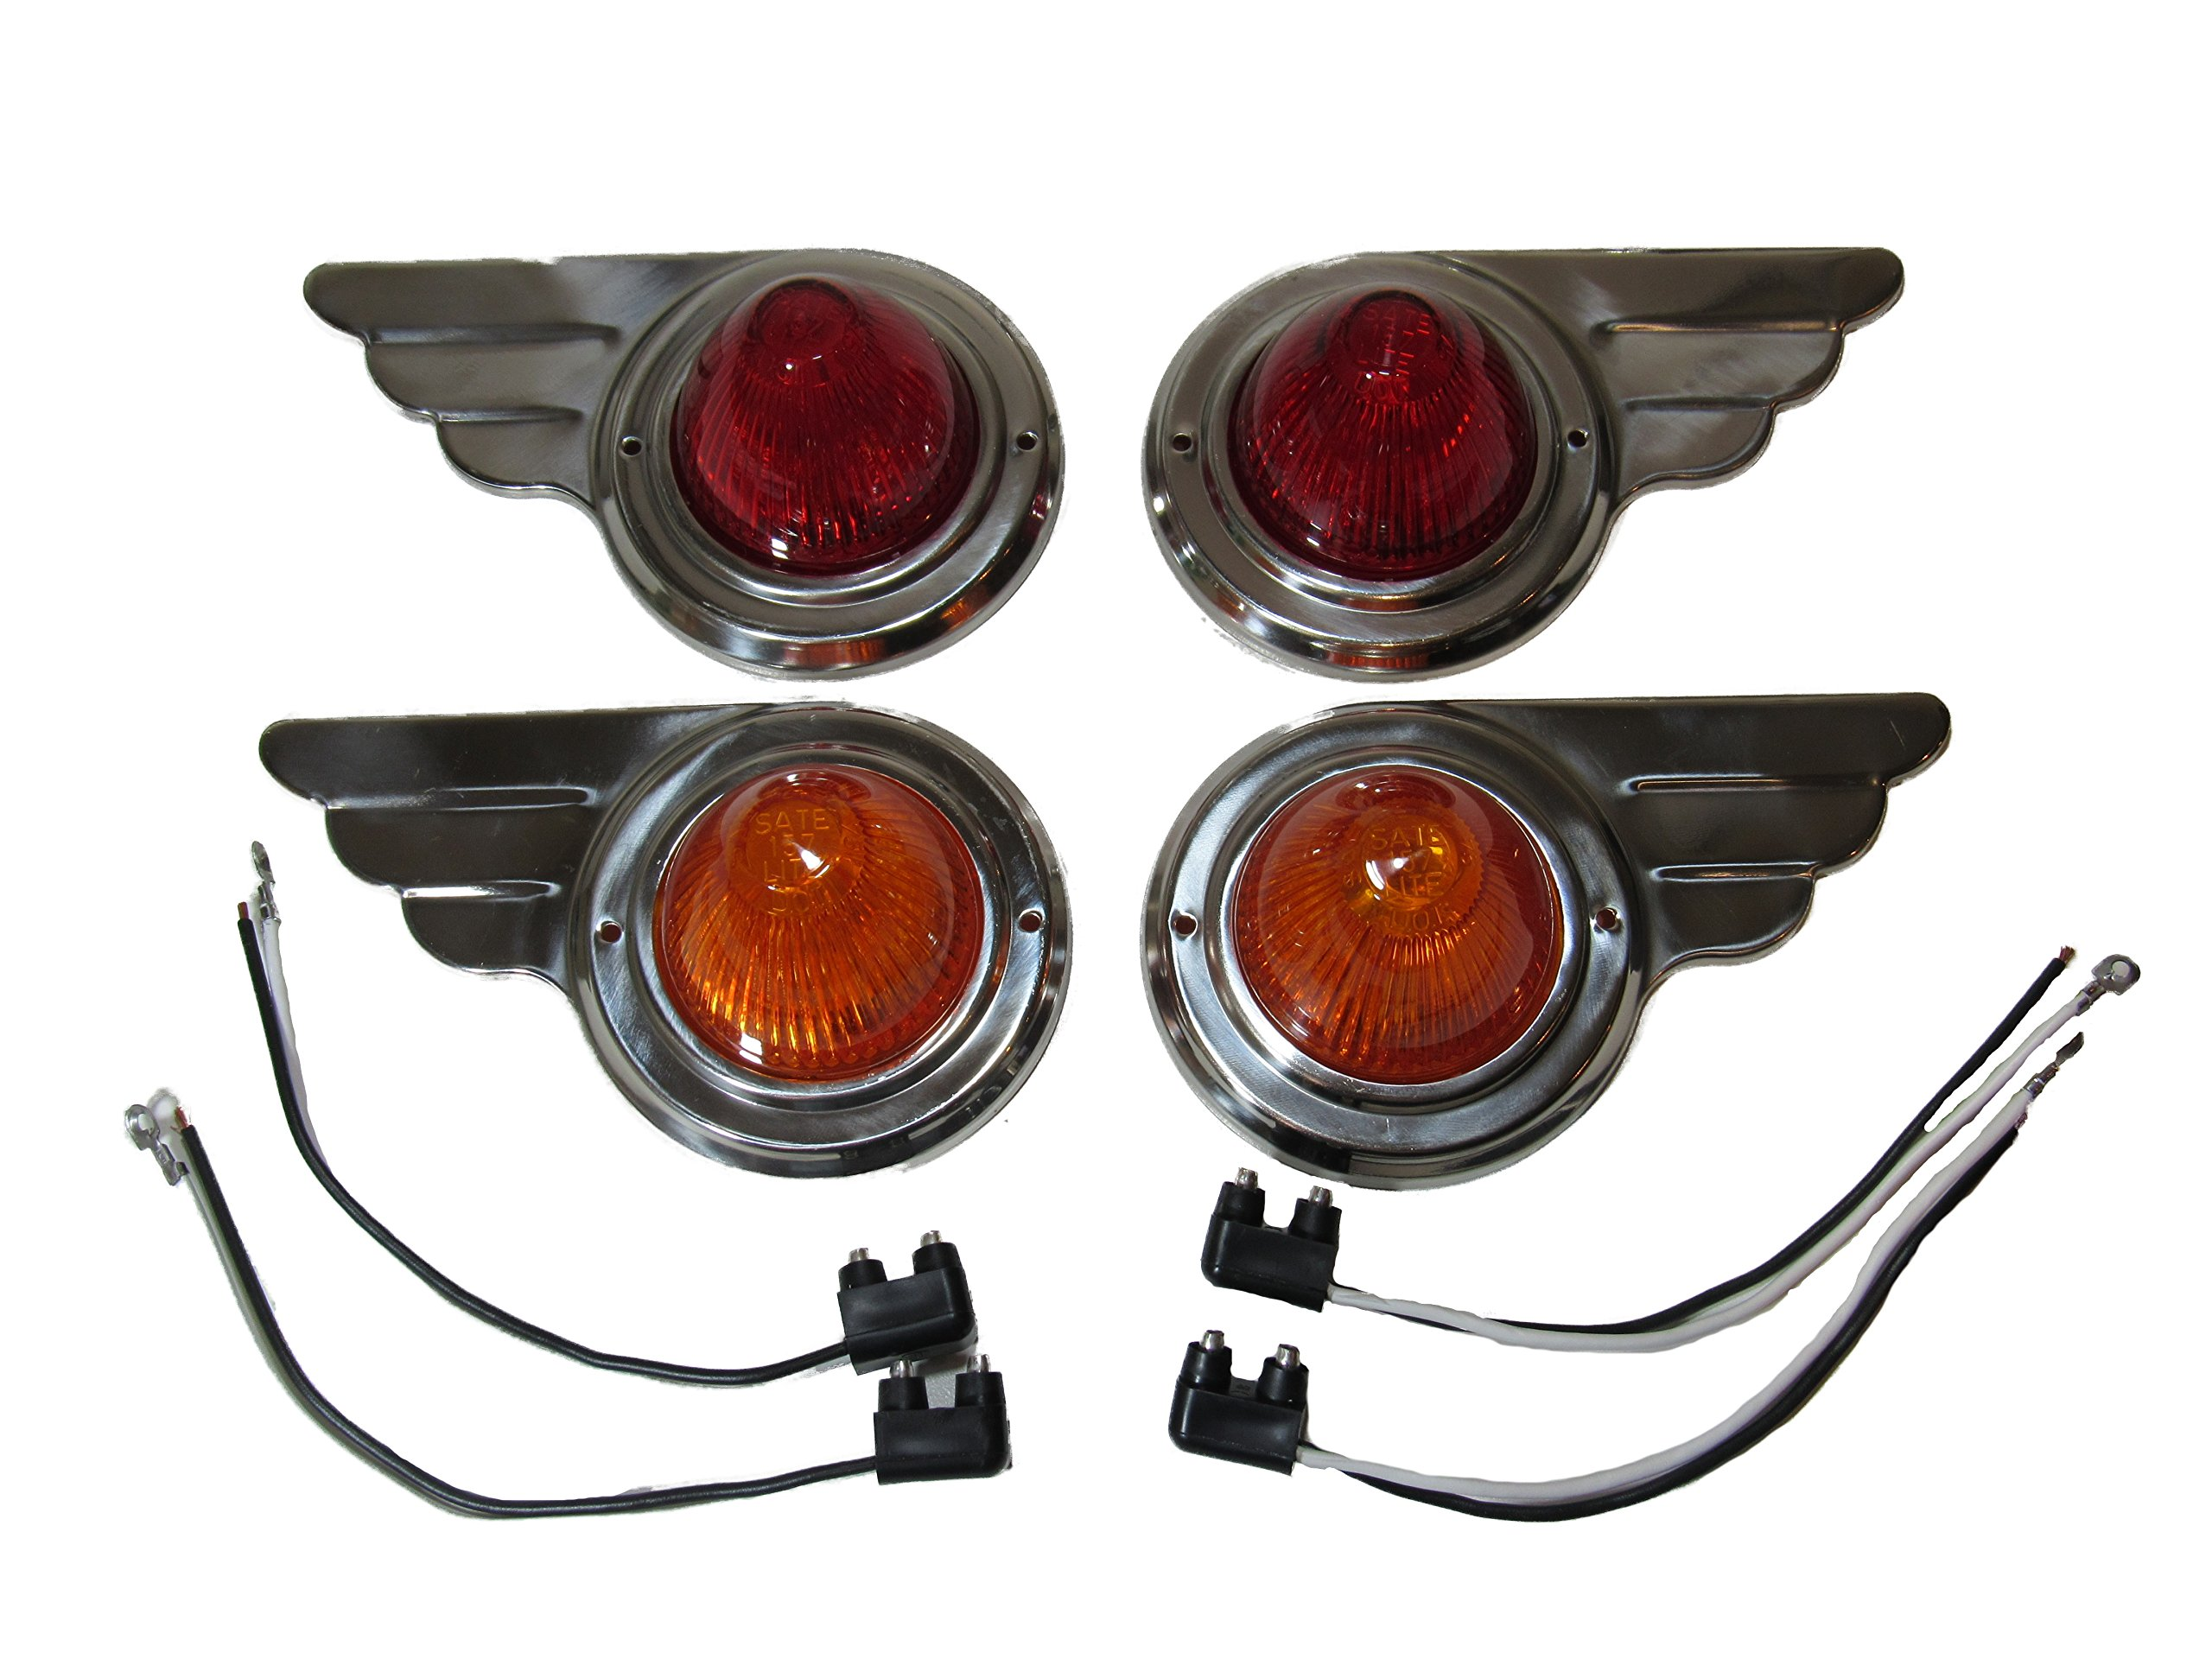 TCMA Wing Travel Trailer Side Marker Lights Deco Airstream Shasta Spartan Airfloat Camper RV by Kool Collectibles